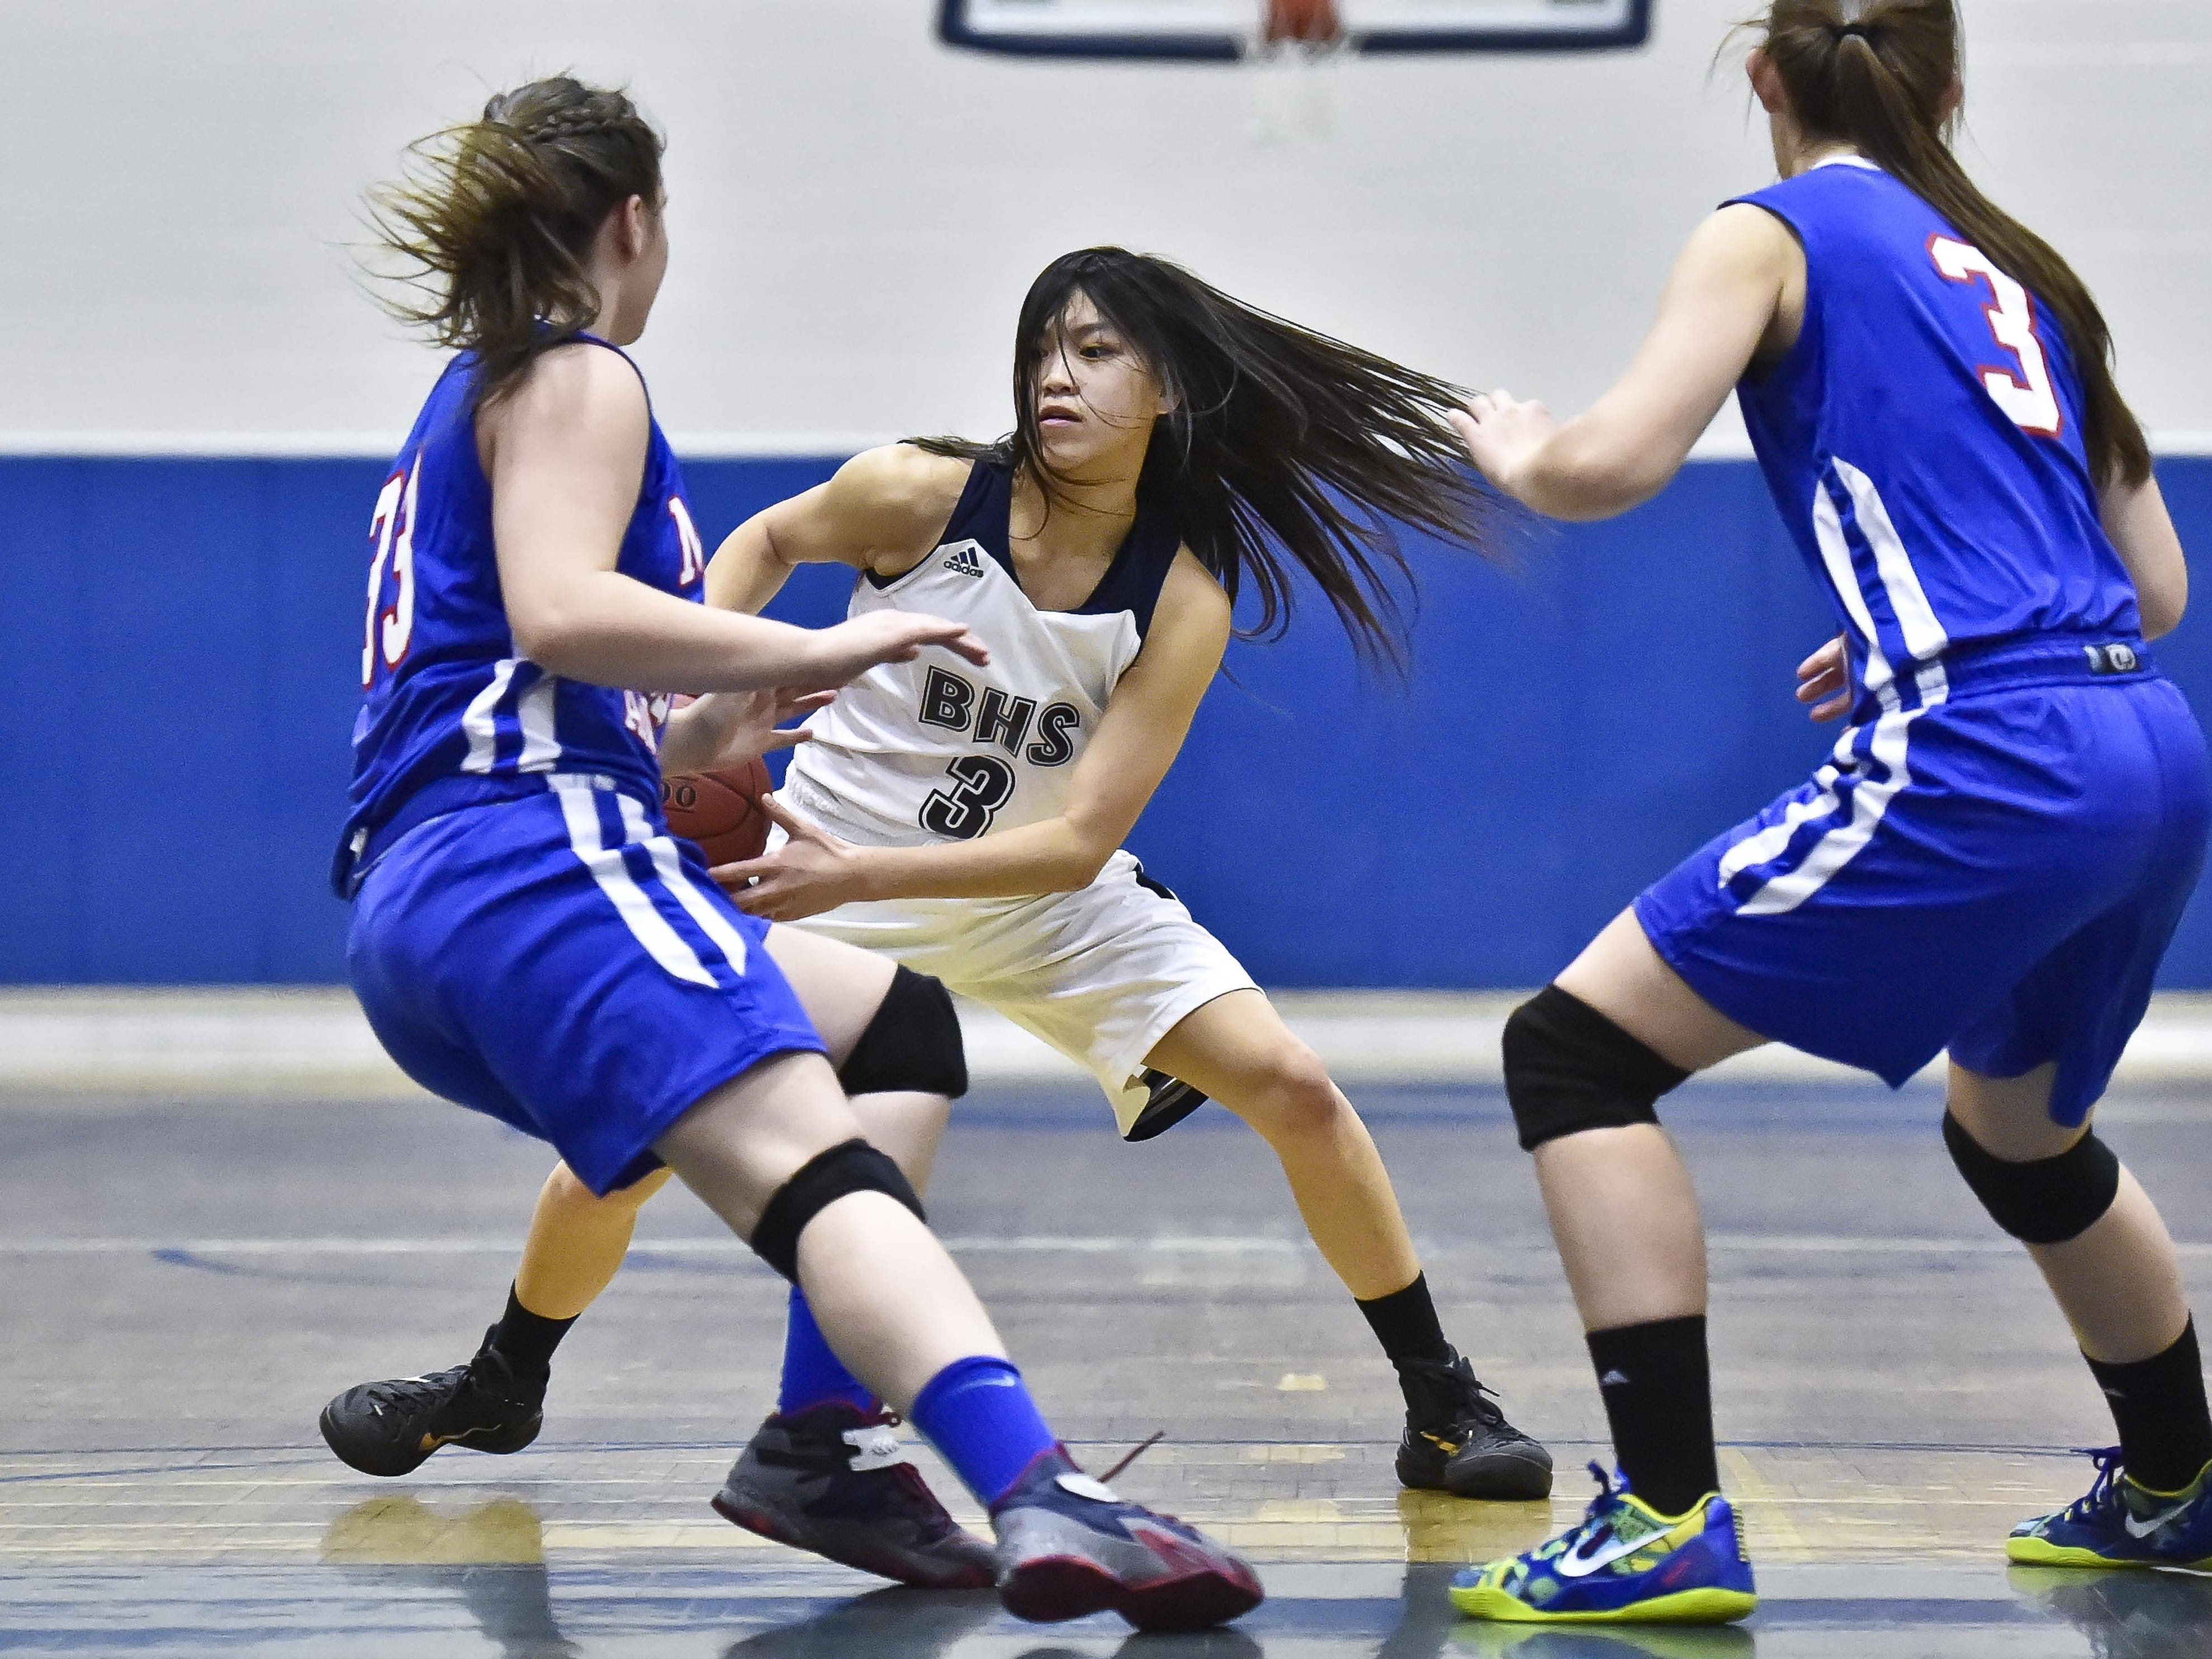 Burlington's Hien Thach (center) tries to get past Mt. Anthony's Emily Hutton (left) and Madison Little in Burlington on Tuesday, December 23, 2014.